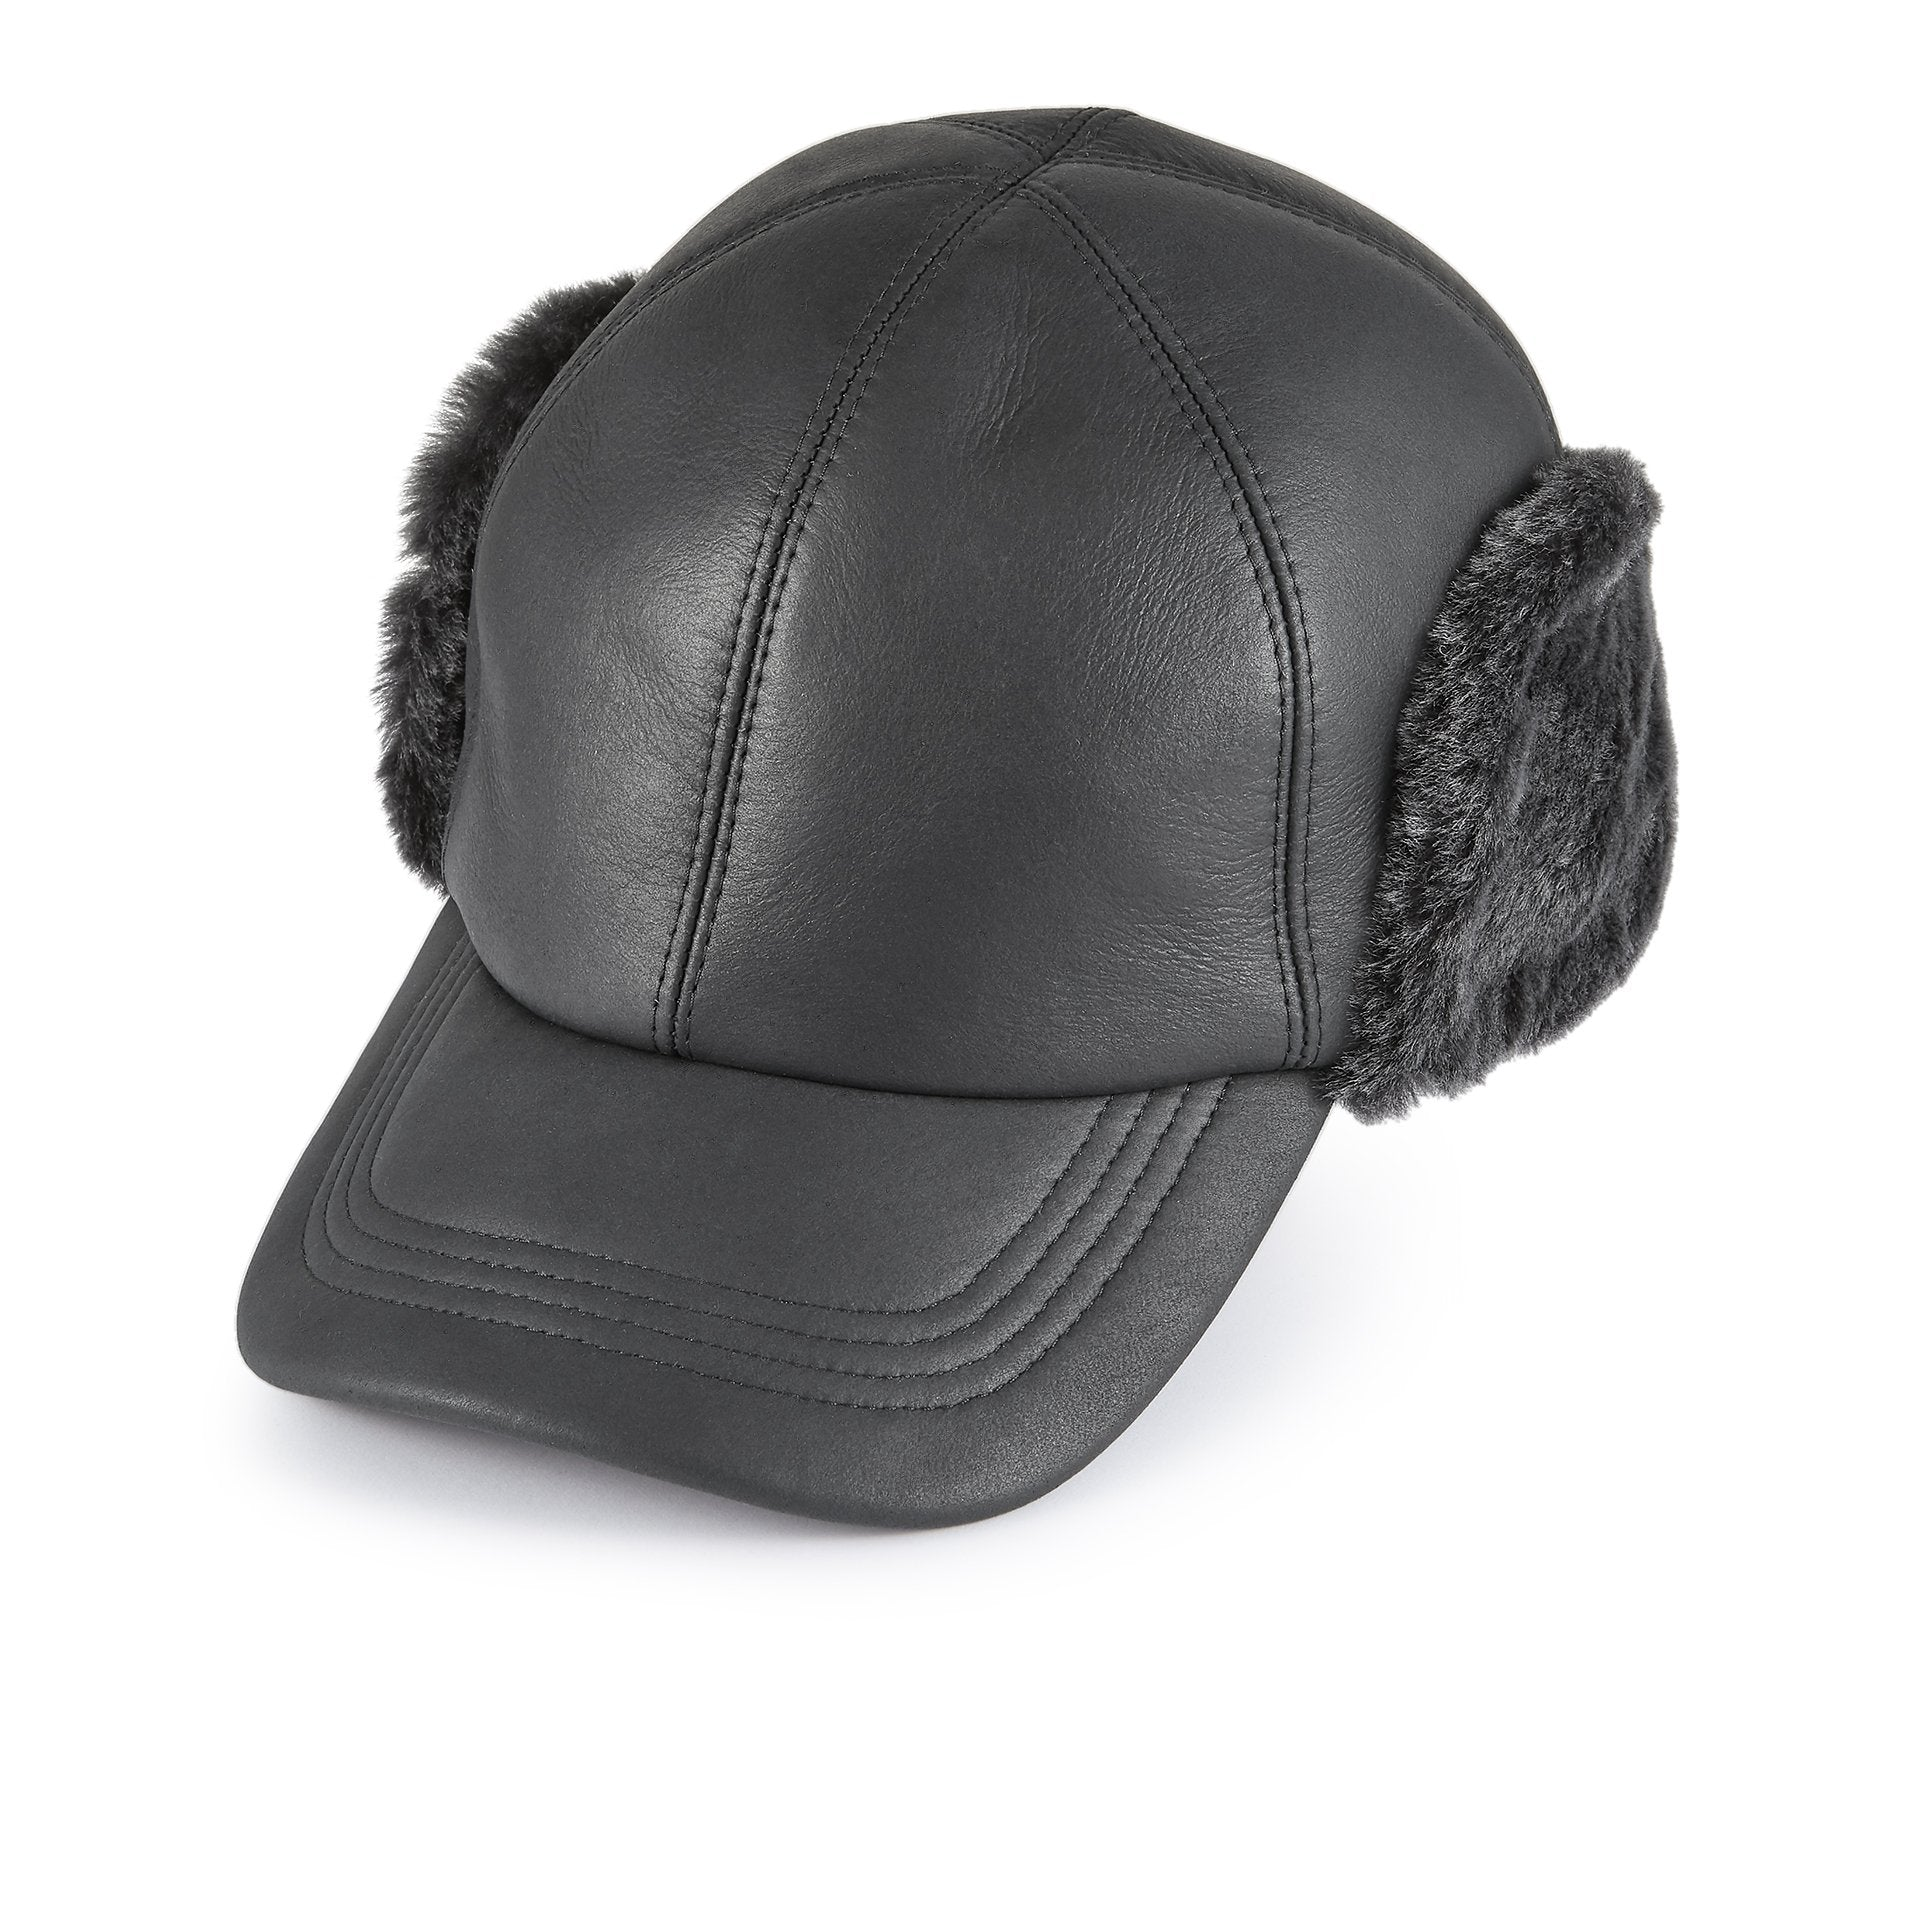 Winnipeg sheepskin baseball cap - Christmas Gifts - Lock & Co. Hatters London UK